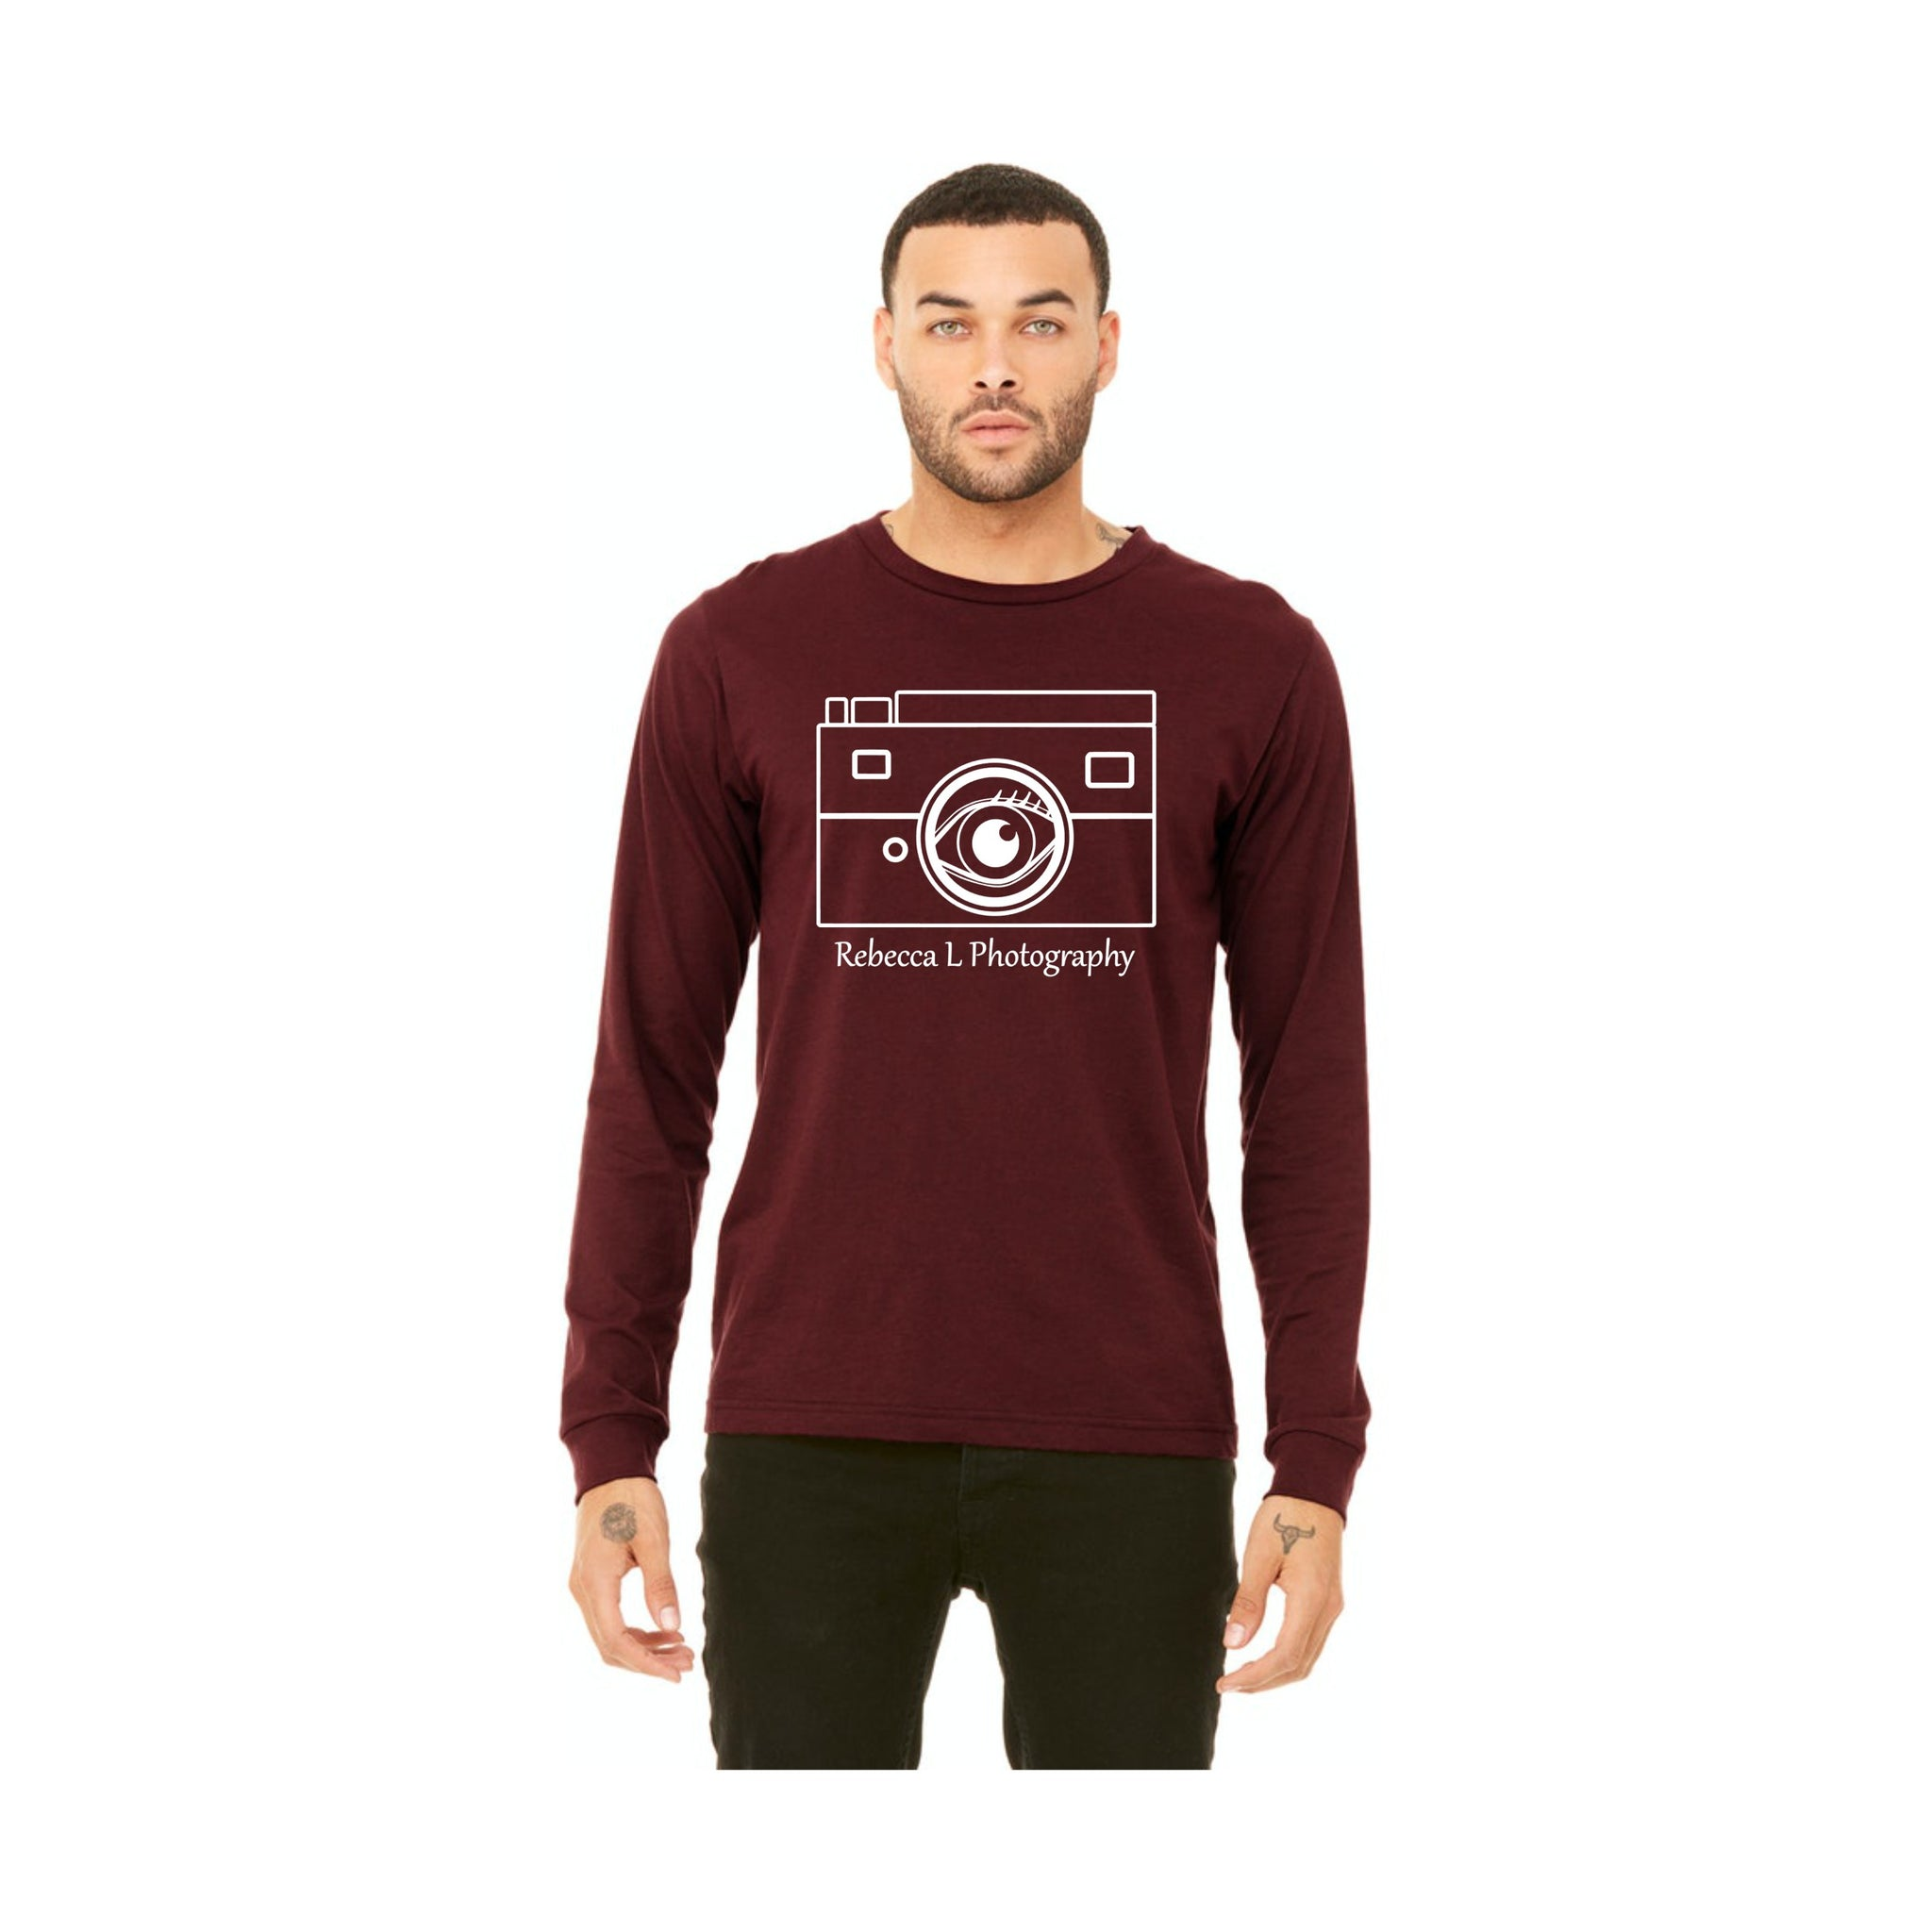 Rebecca L Photography Long Sleeve Shirt